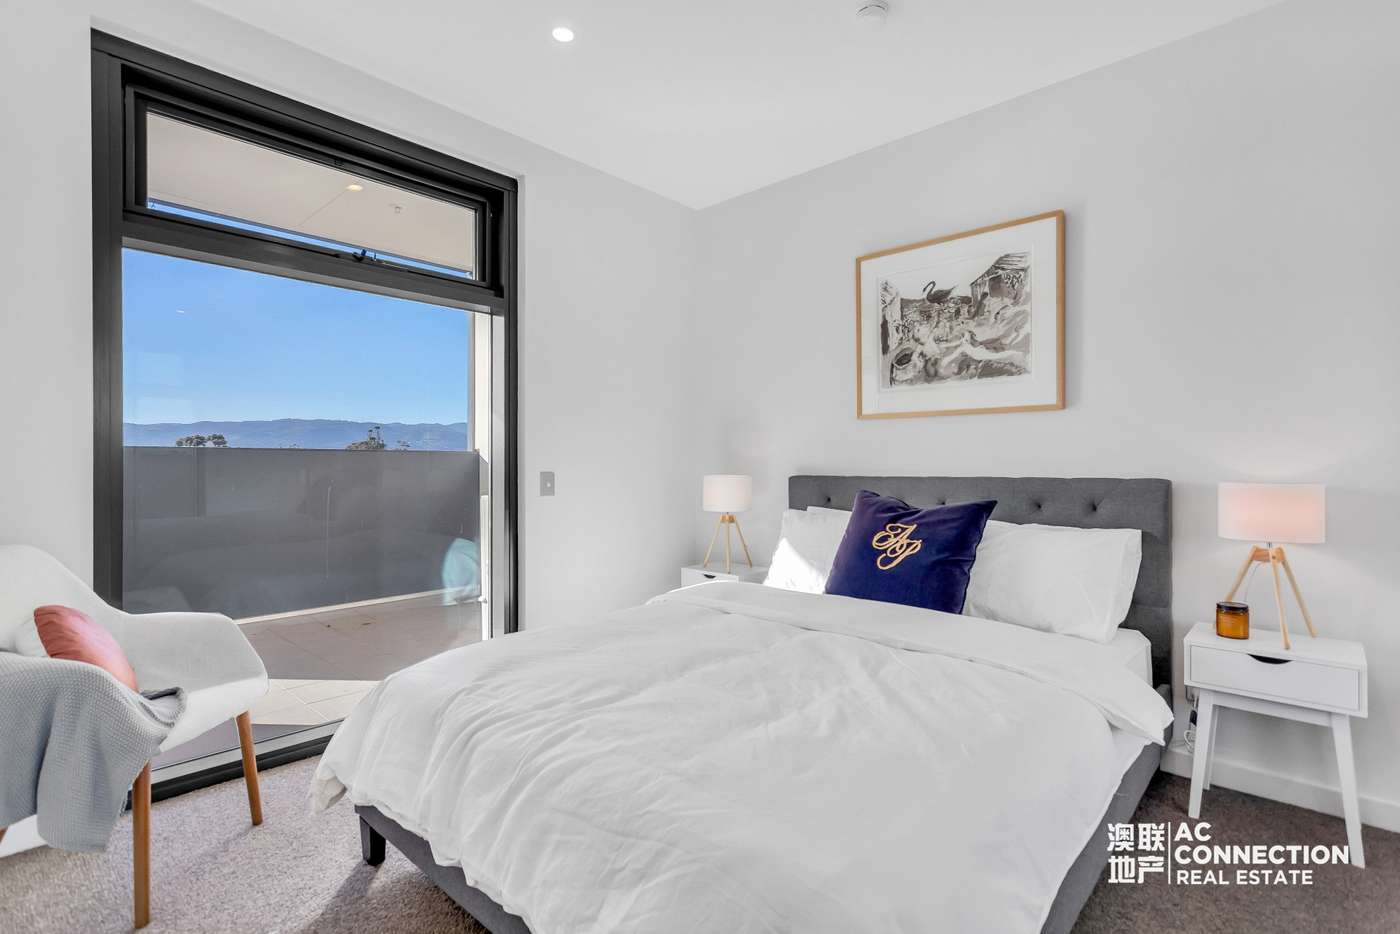 Fifth view of Homely apartment listing, 308/297 Pirie Street, Adelaide SA 5000